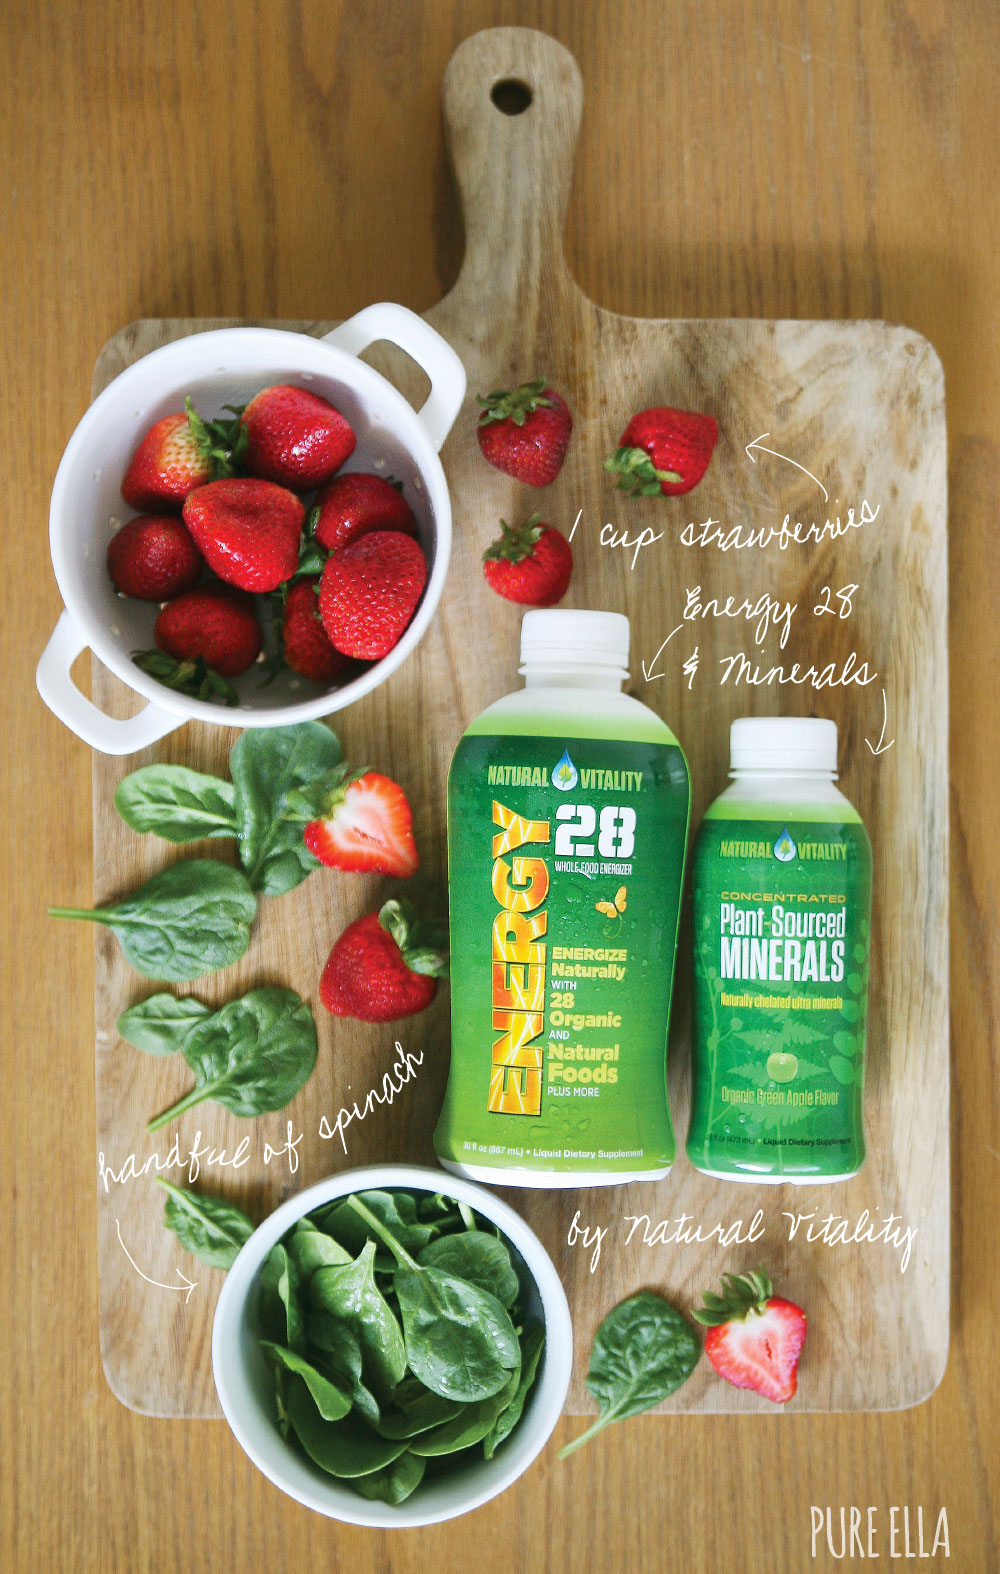 Pure-Ella-Natural-Vitality-Energy-28-Minerals-Smoothie2